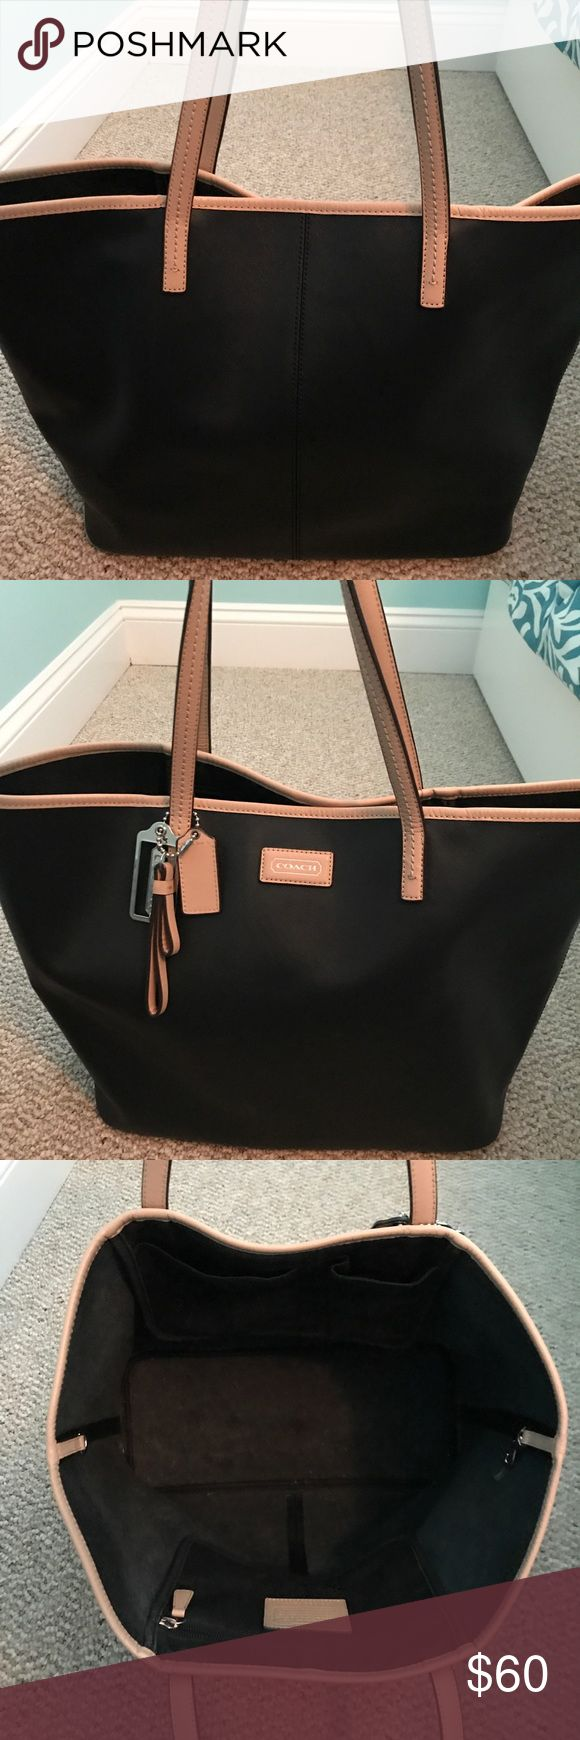 Coach Tote Bag Black large spacious Coach Tote bag with tan trim. Great for every day use, carrying books/ laptop for class or work, and traveling Coach Bags Totes